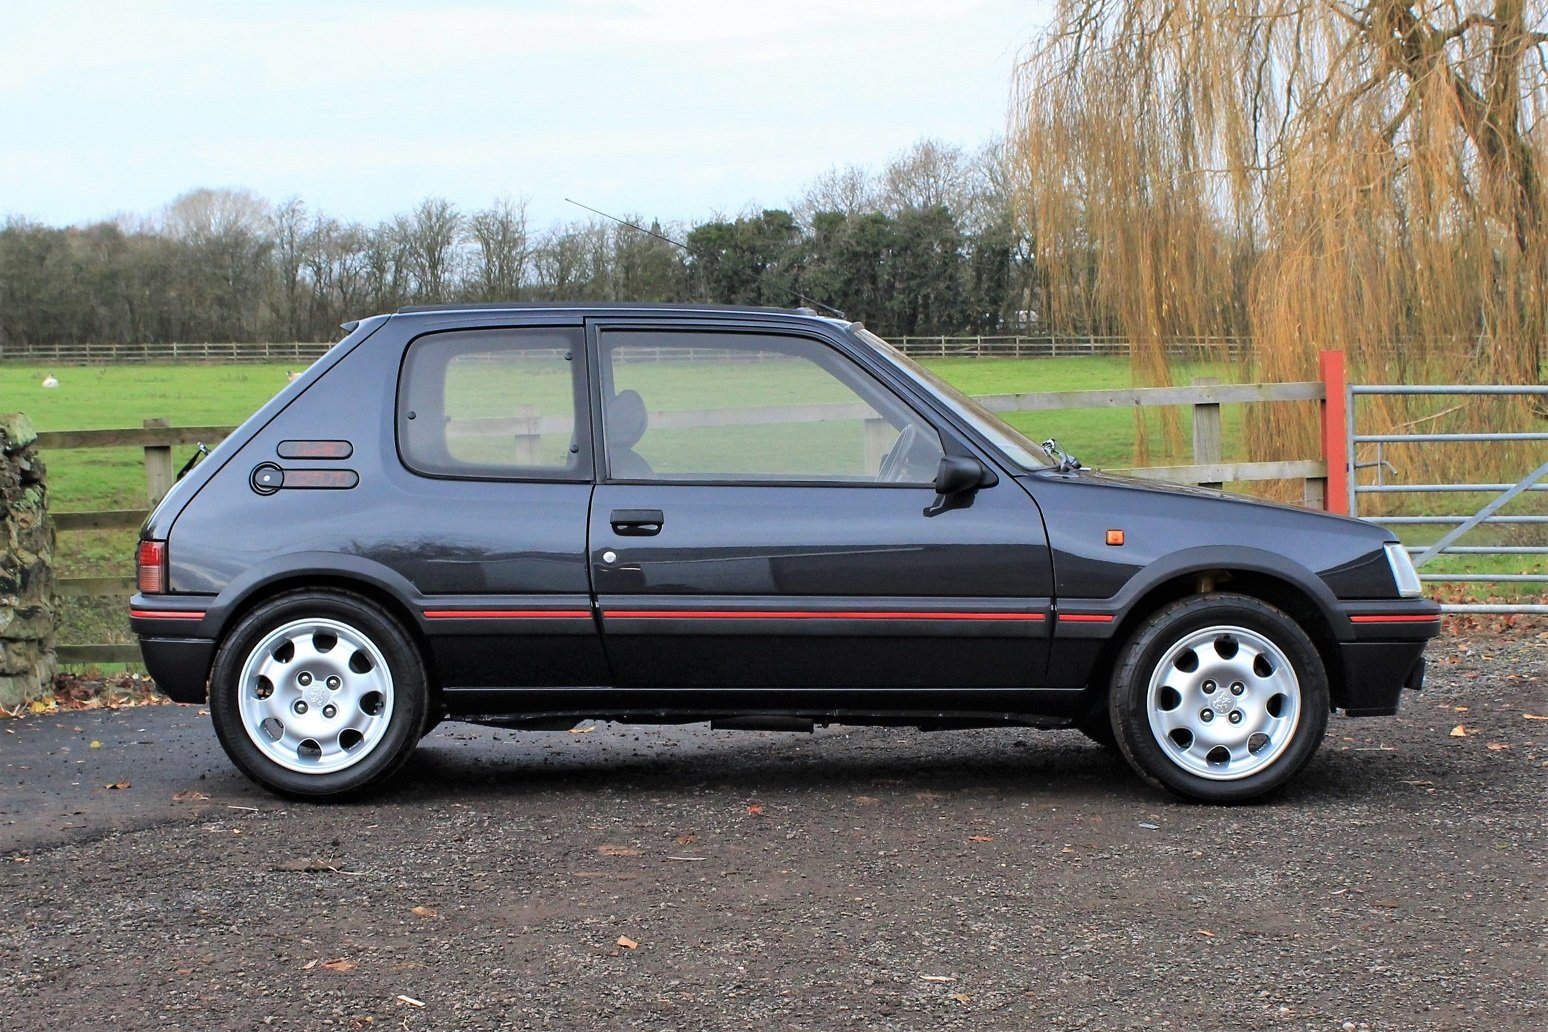 1991 Peugeot 205 GTI 1.9,65,534 miles,A/C,Seibu Japan SOLD (picture 2 of 6)